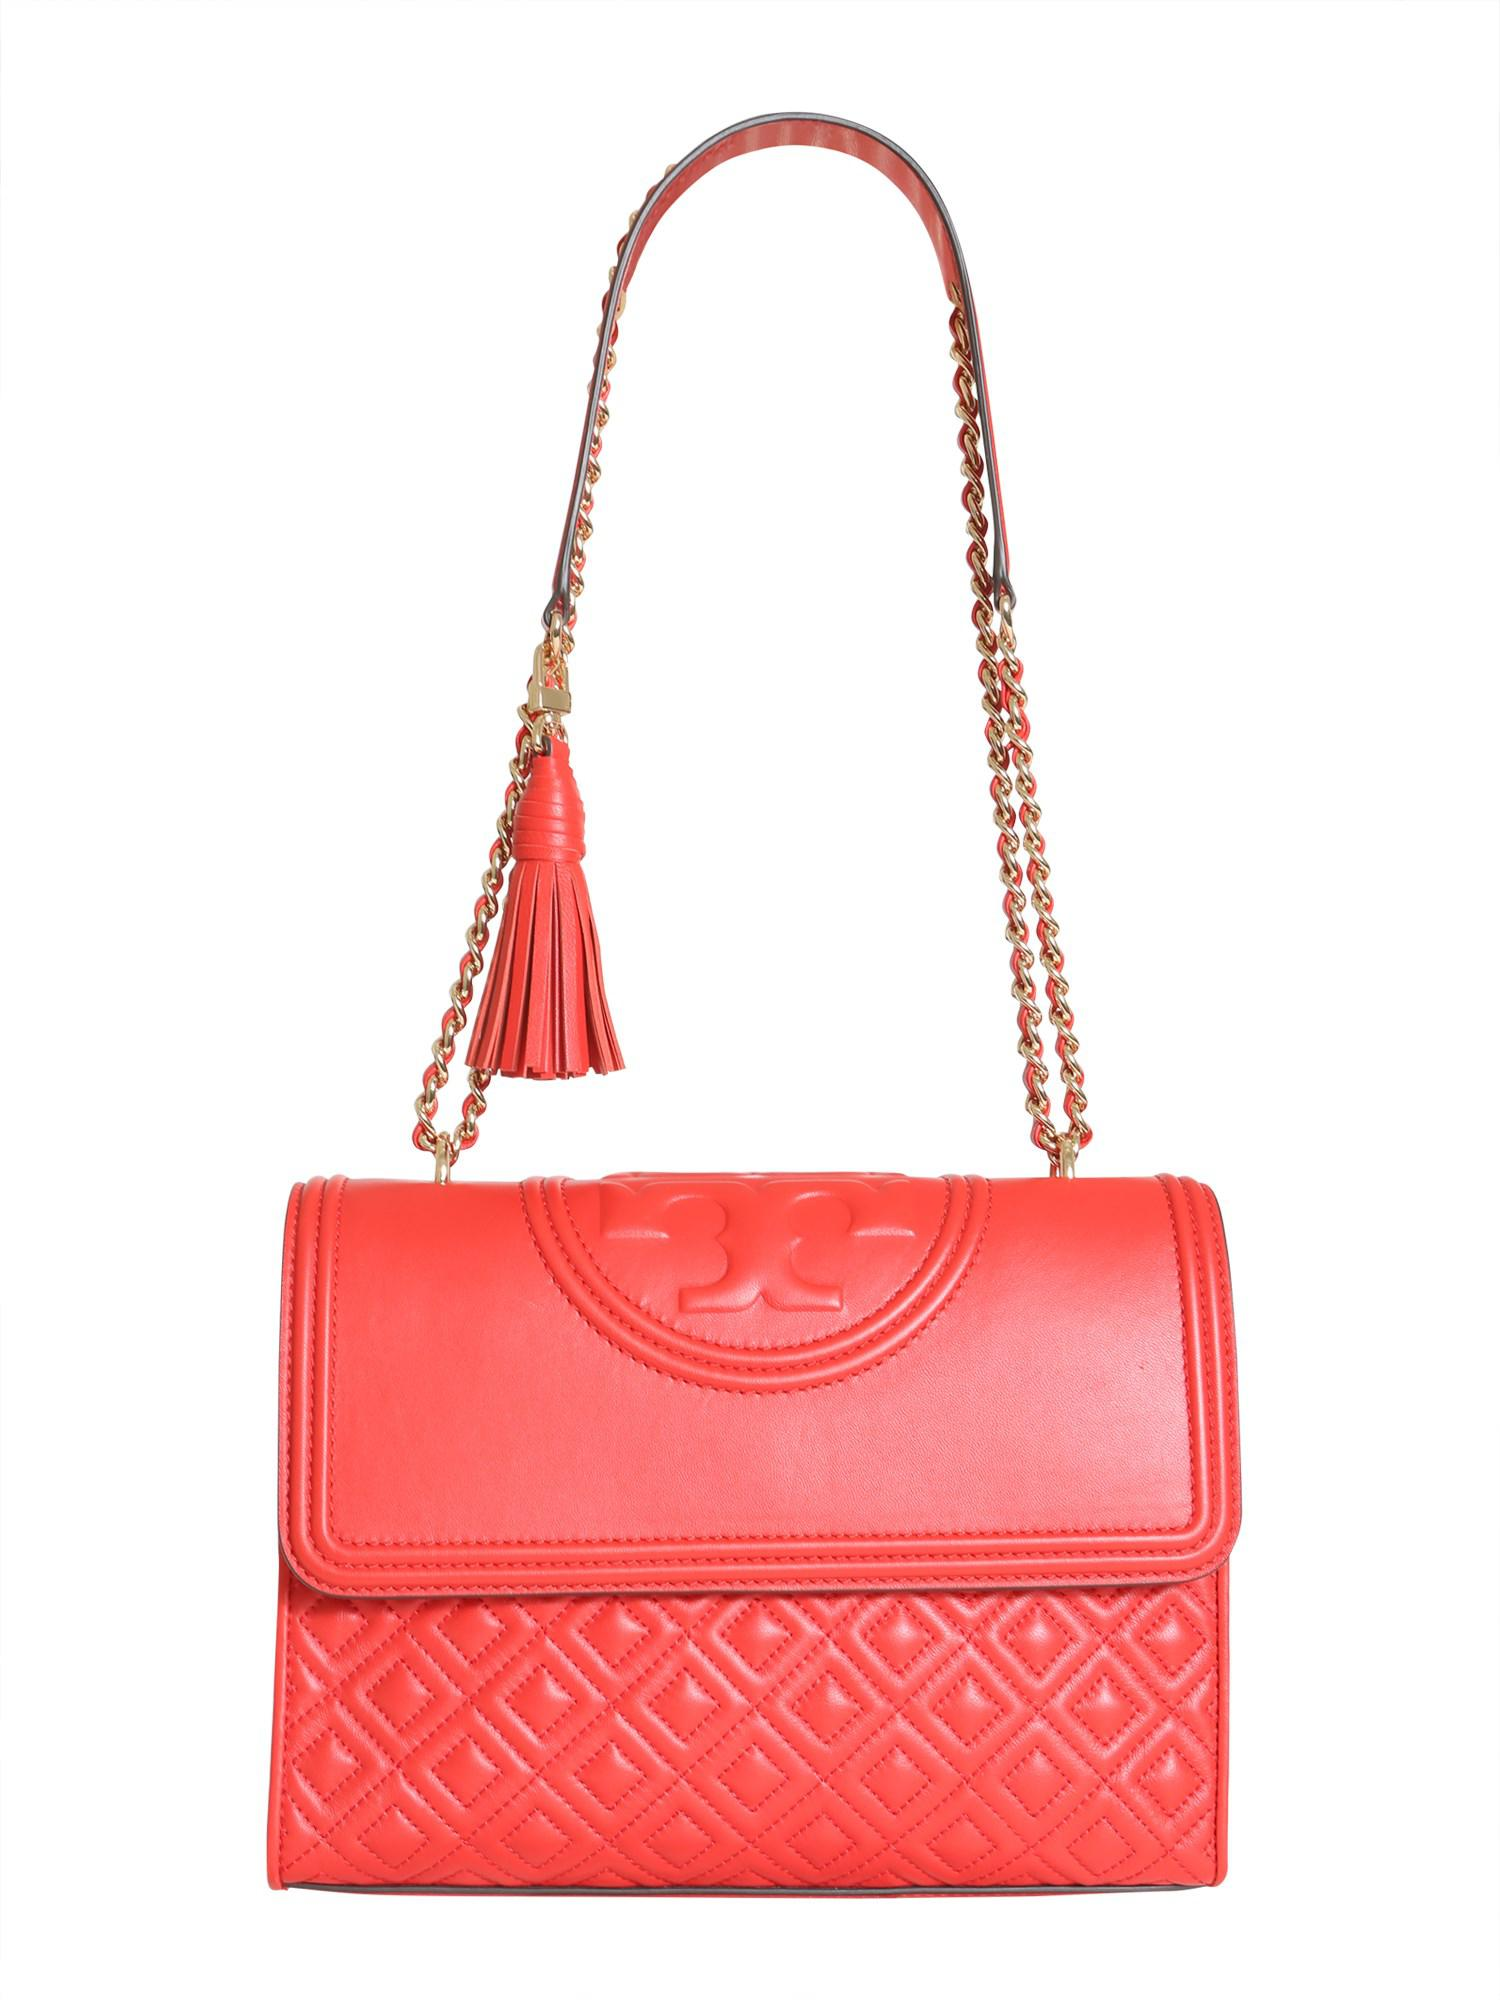 e564f446f180 Tory Burch Flaming Leather Bag in Red - Lyst